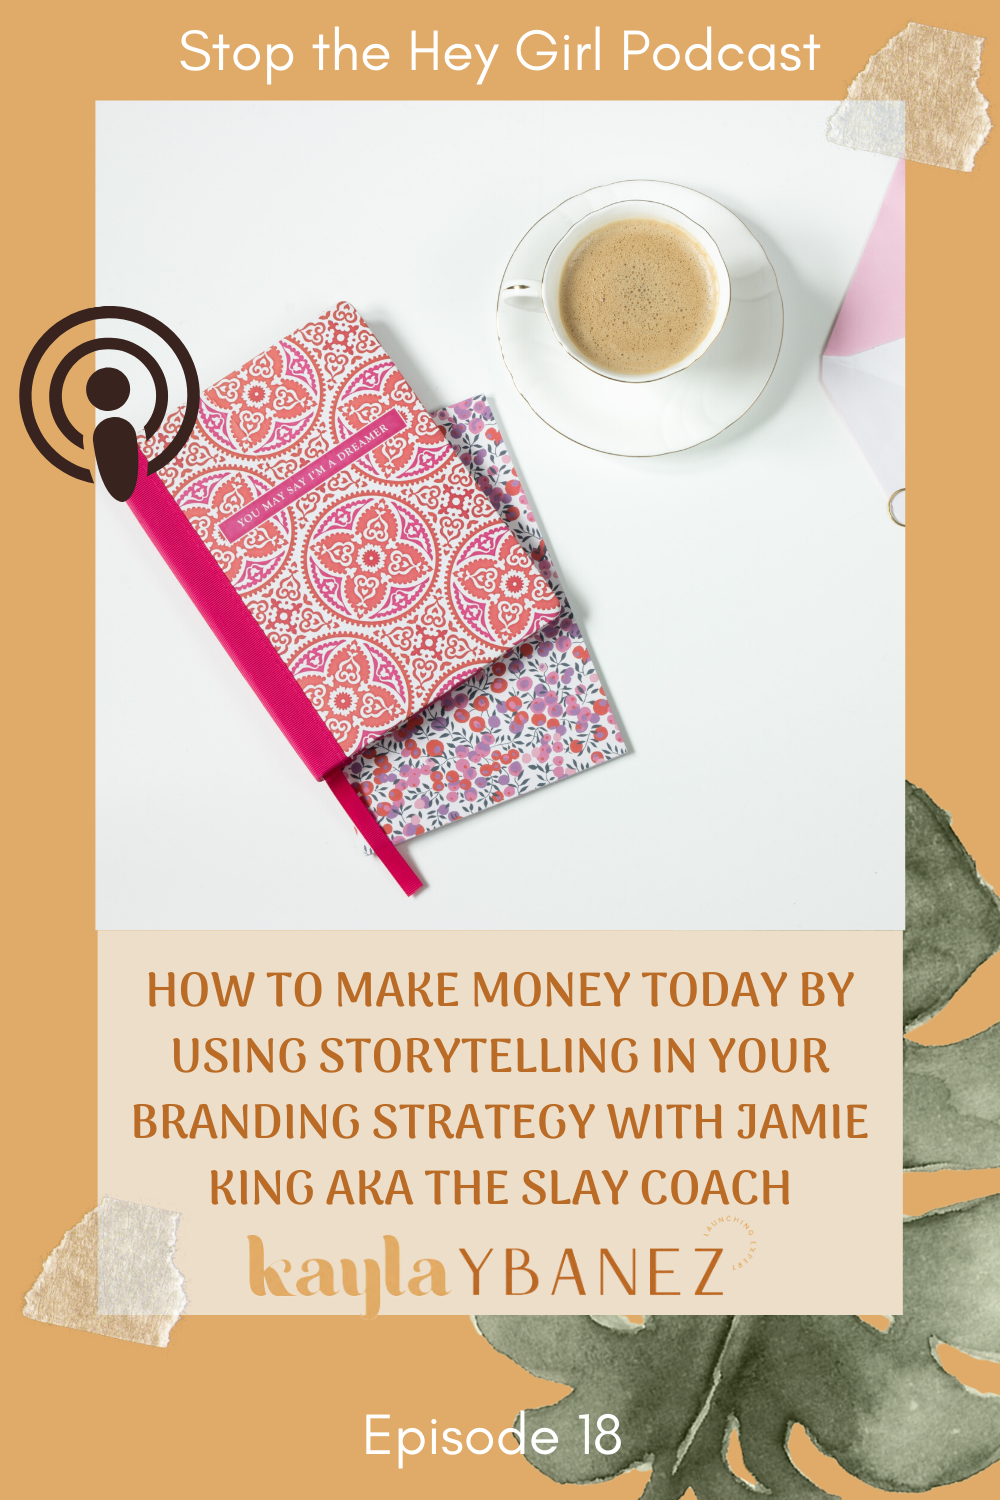 How to Use Storytelling to build your personal brand and make money today with Jamie King_The slay coach7